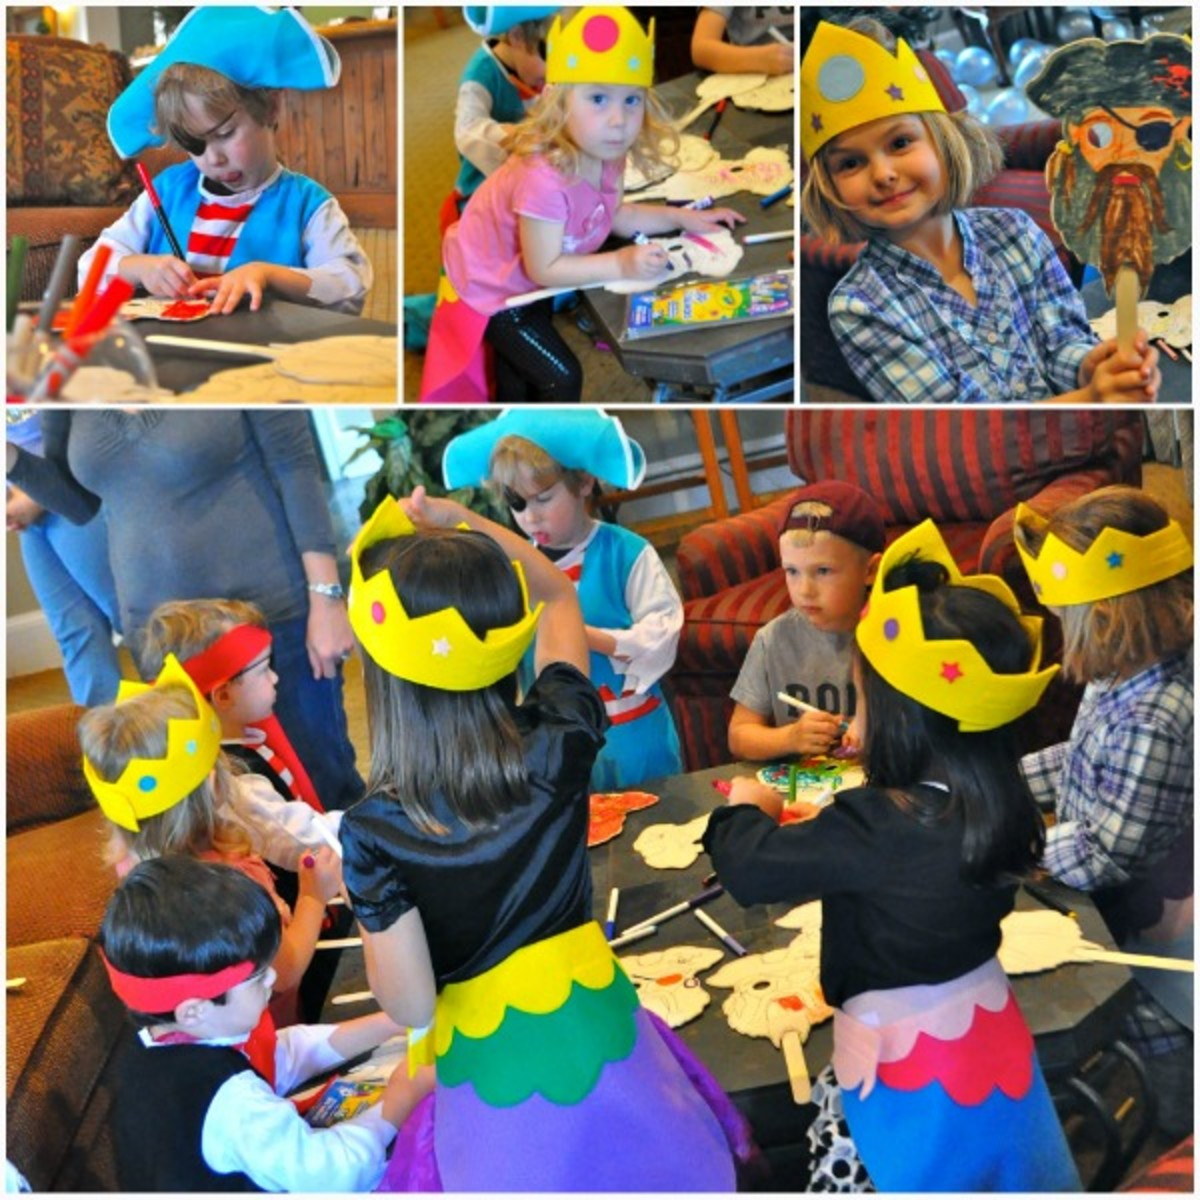 pirate mask coloring at pirate party